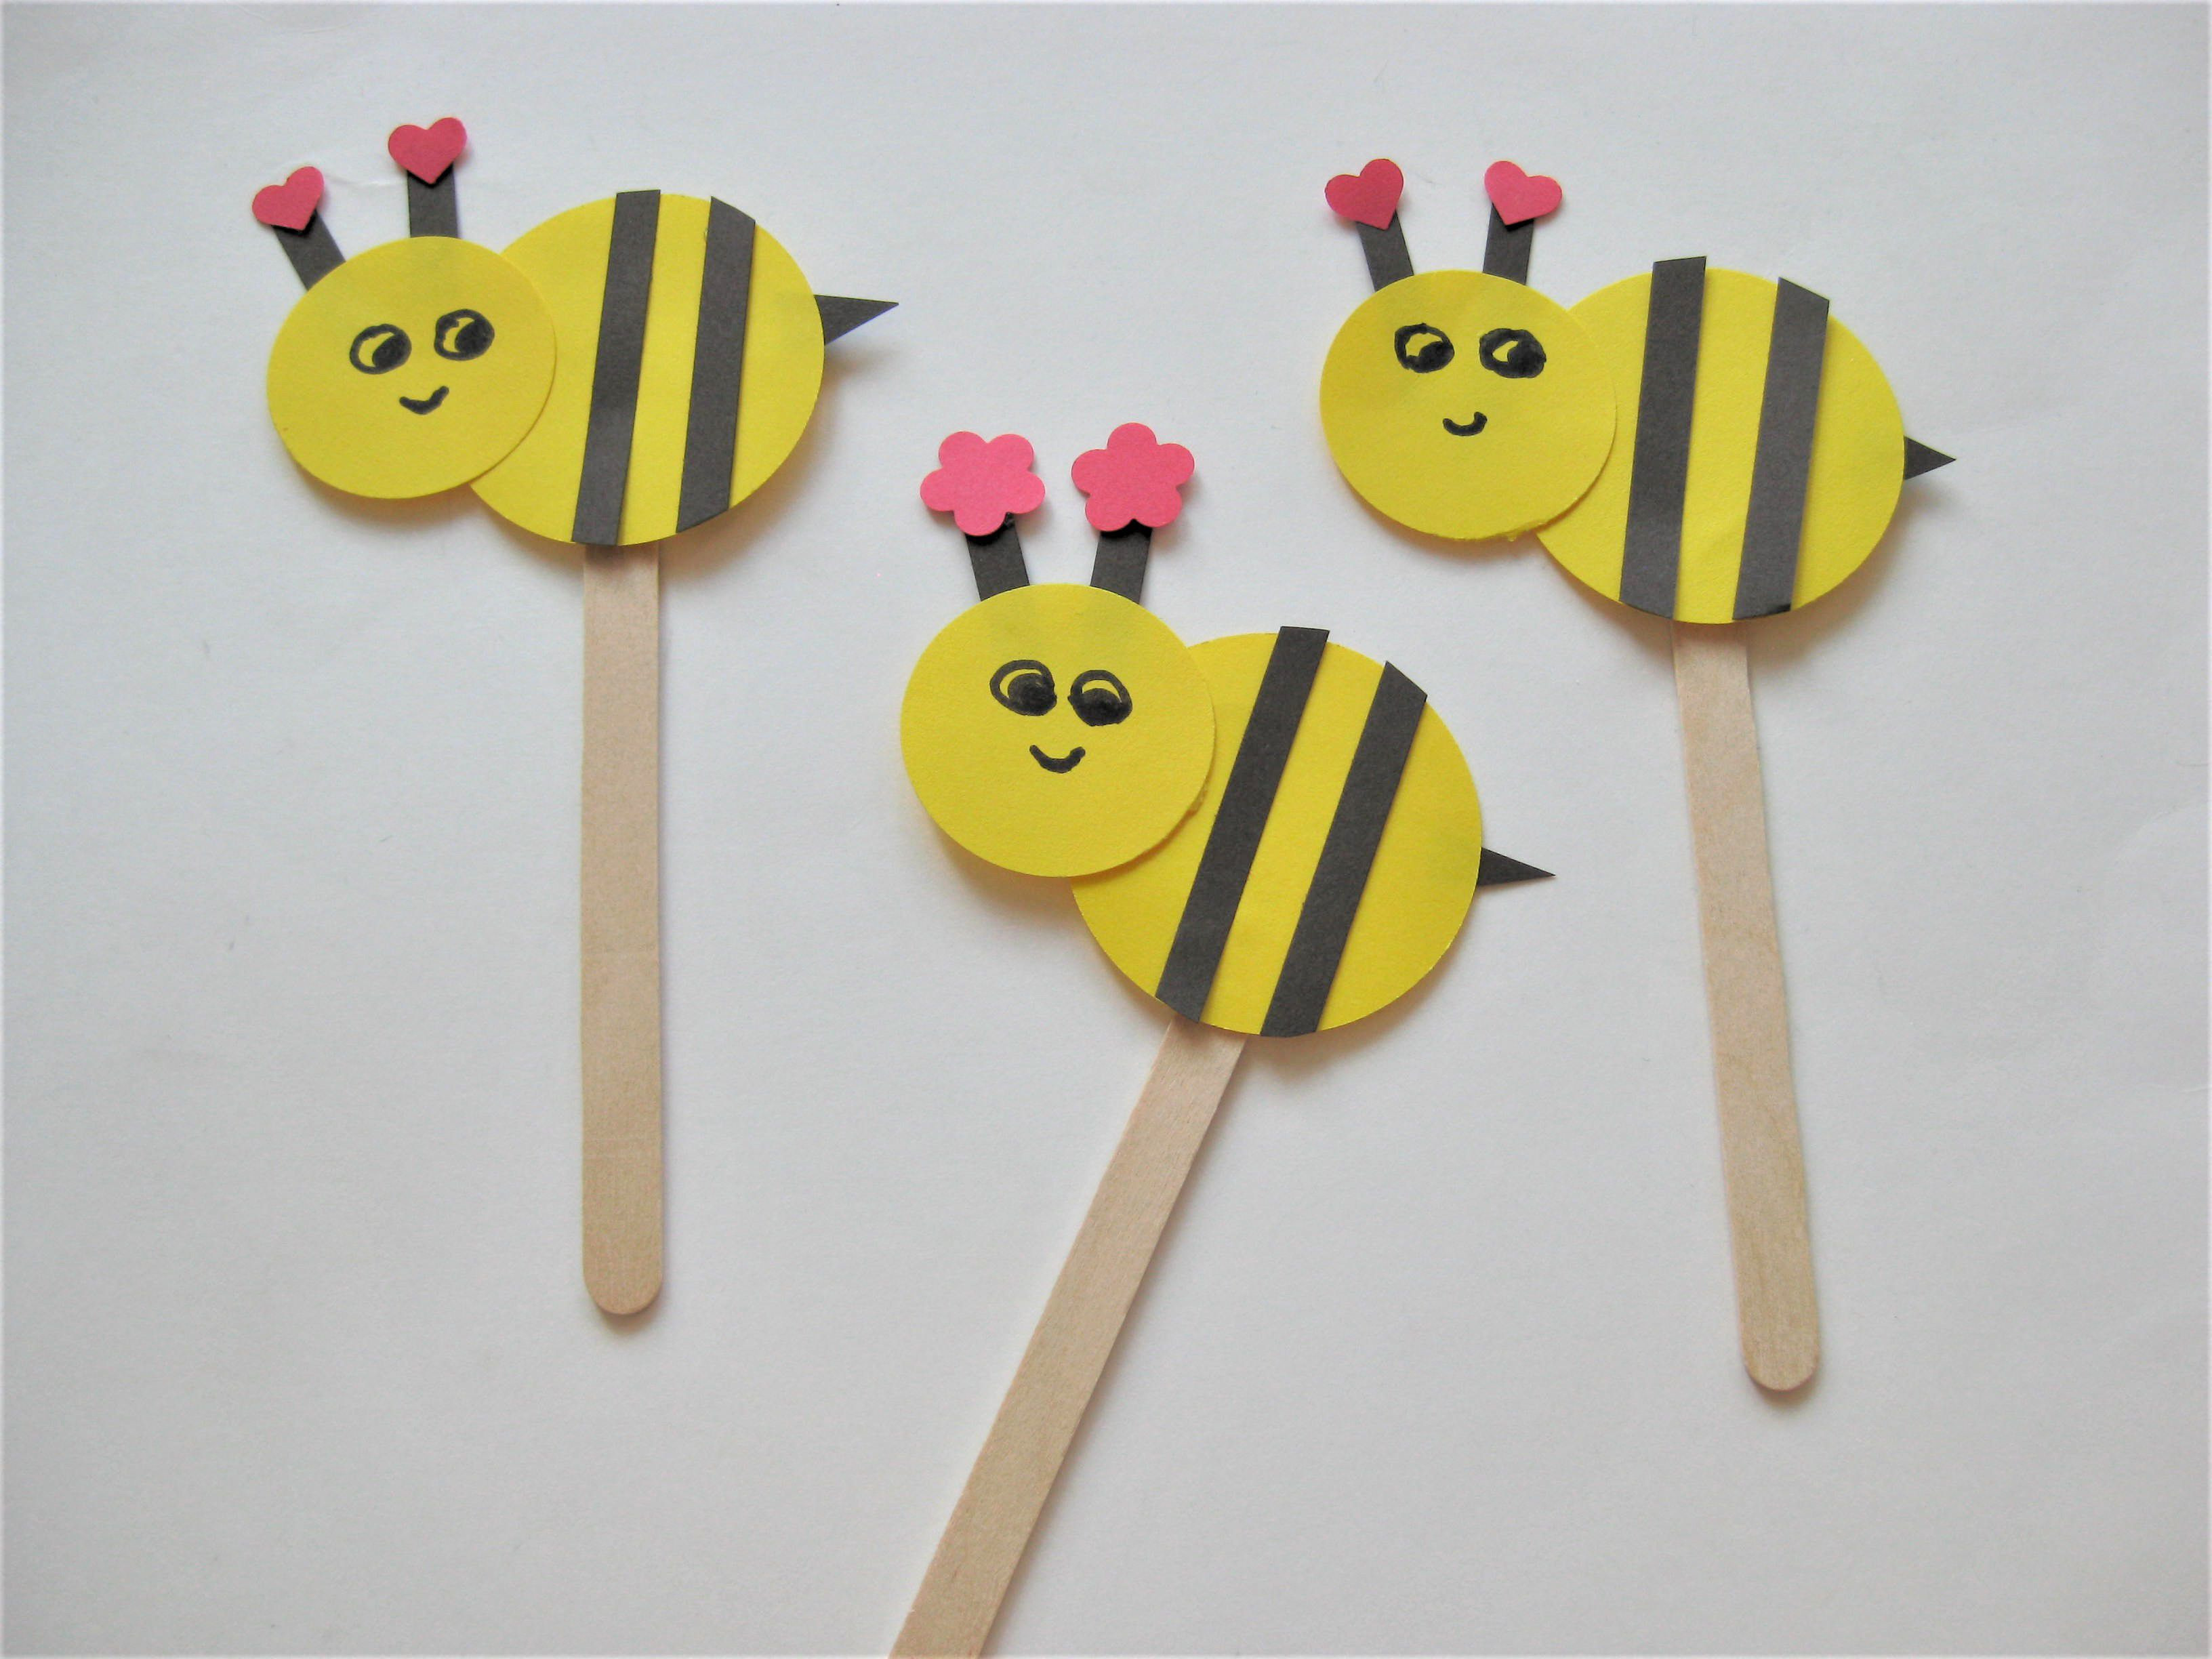 Best ideas about Easy Arts And Crafts For Toddlers . Save or Pin Bee Craft for Kids Now.